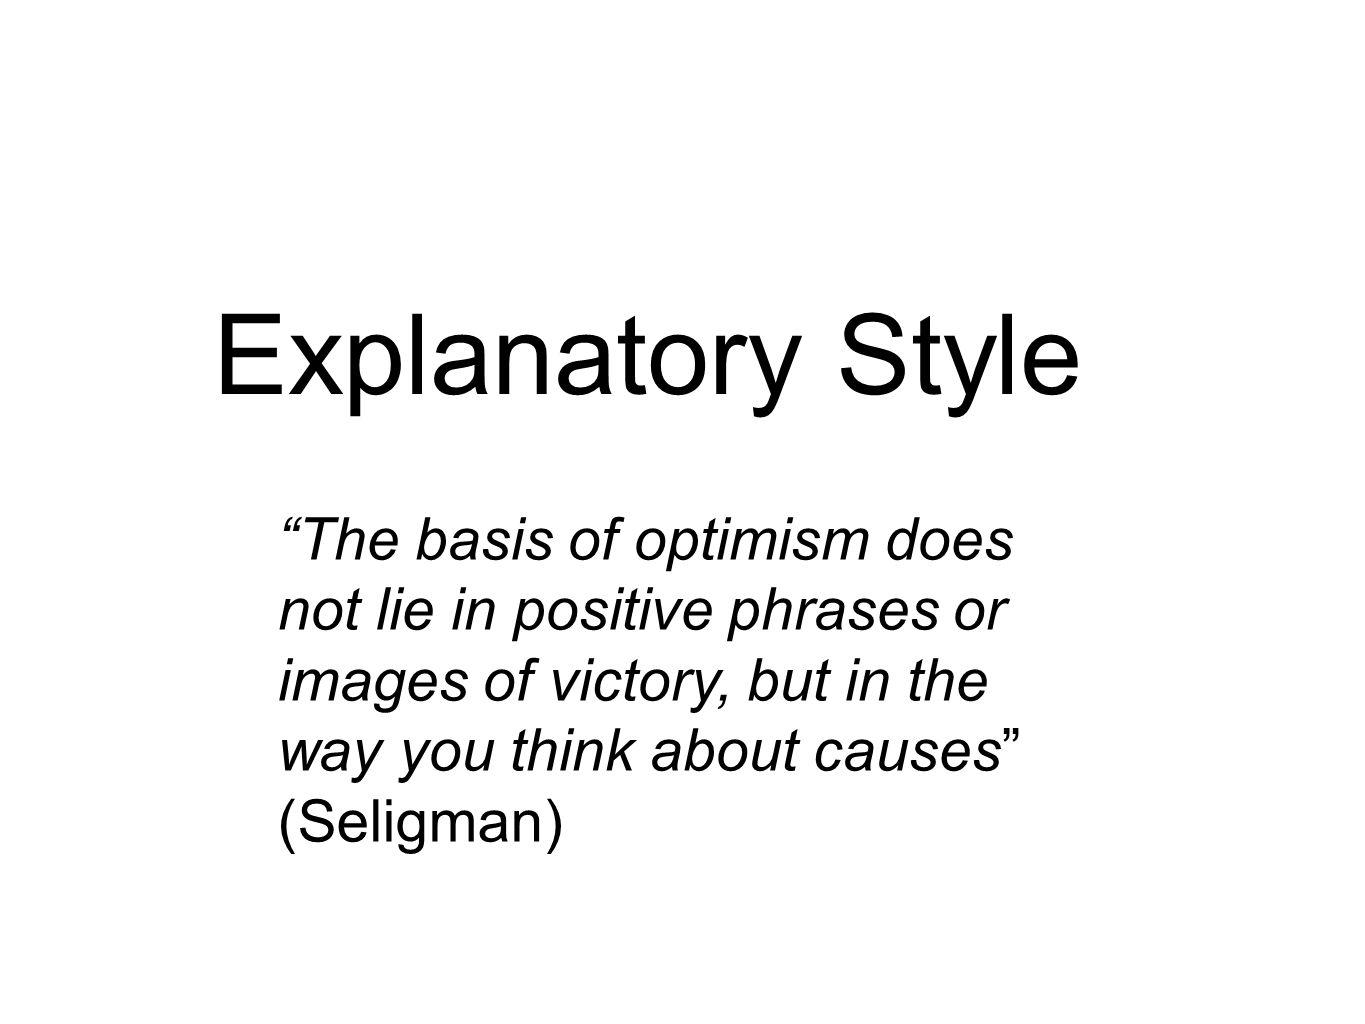 Explanatory Style The basis of optimism does not lie in positive phrases or images of victory, but in the way you think about causes (Seligman)